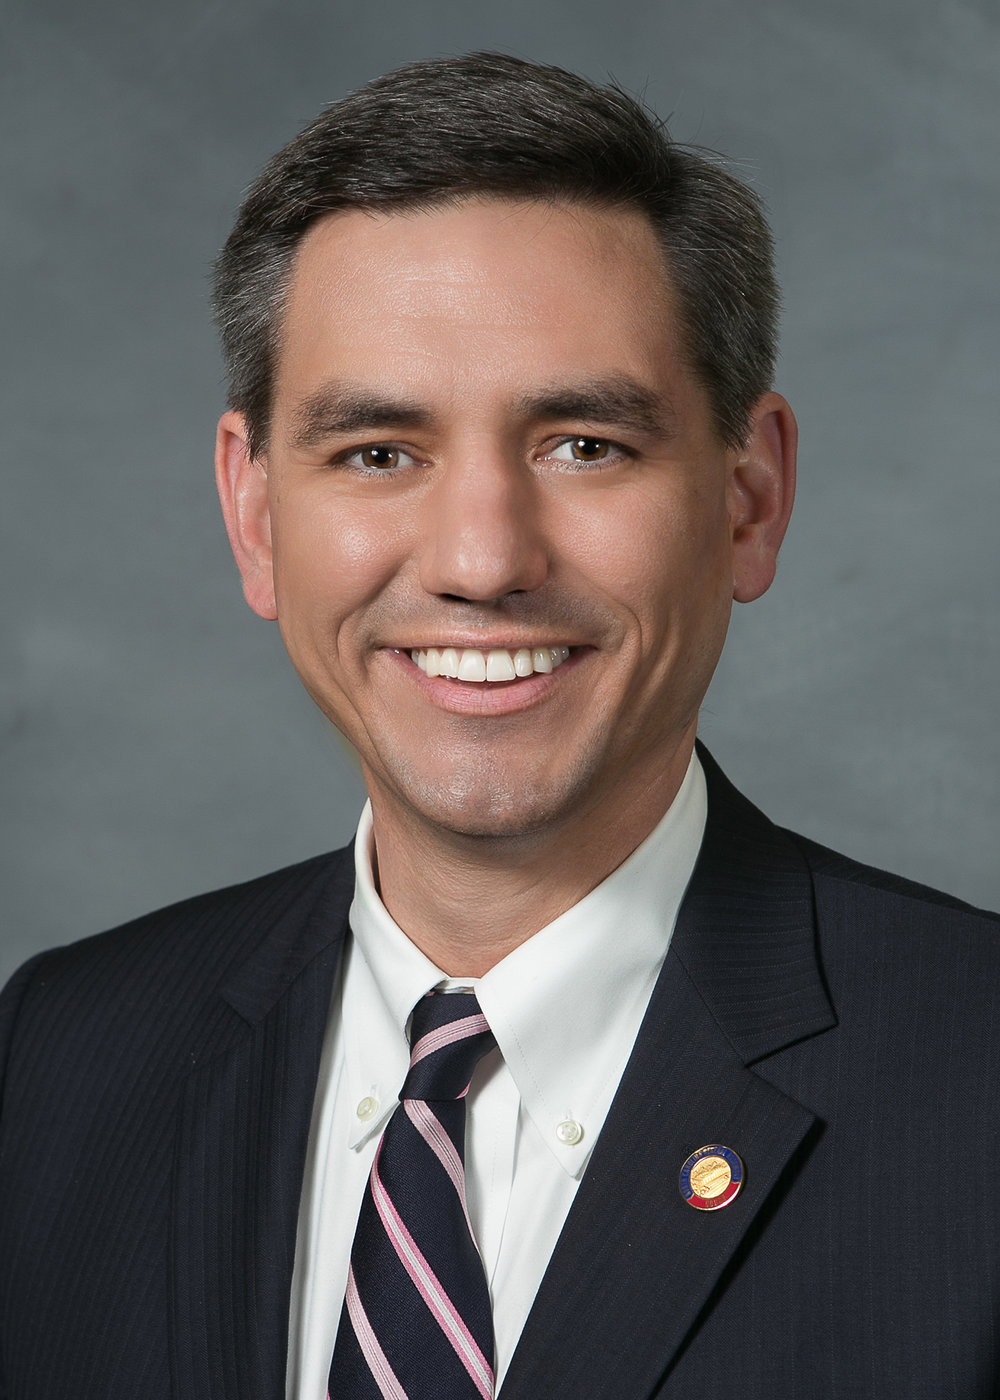 HOUSE REP, BRIAN TURNER - DISTRICT 116